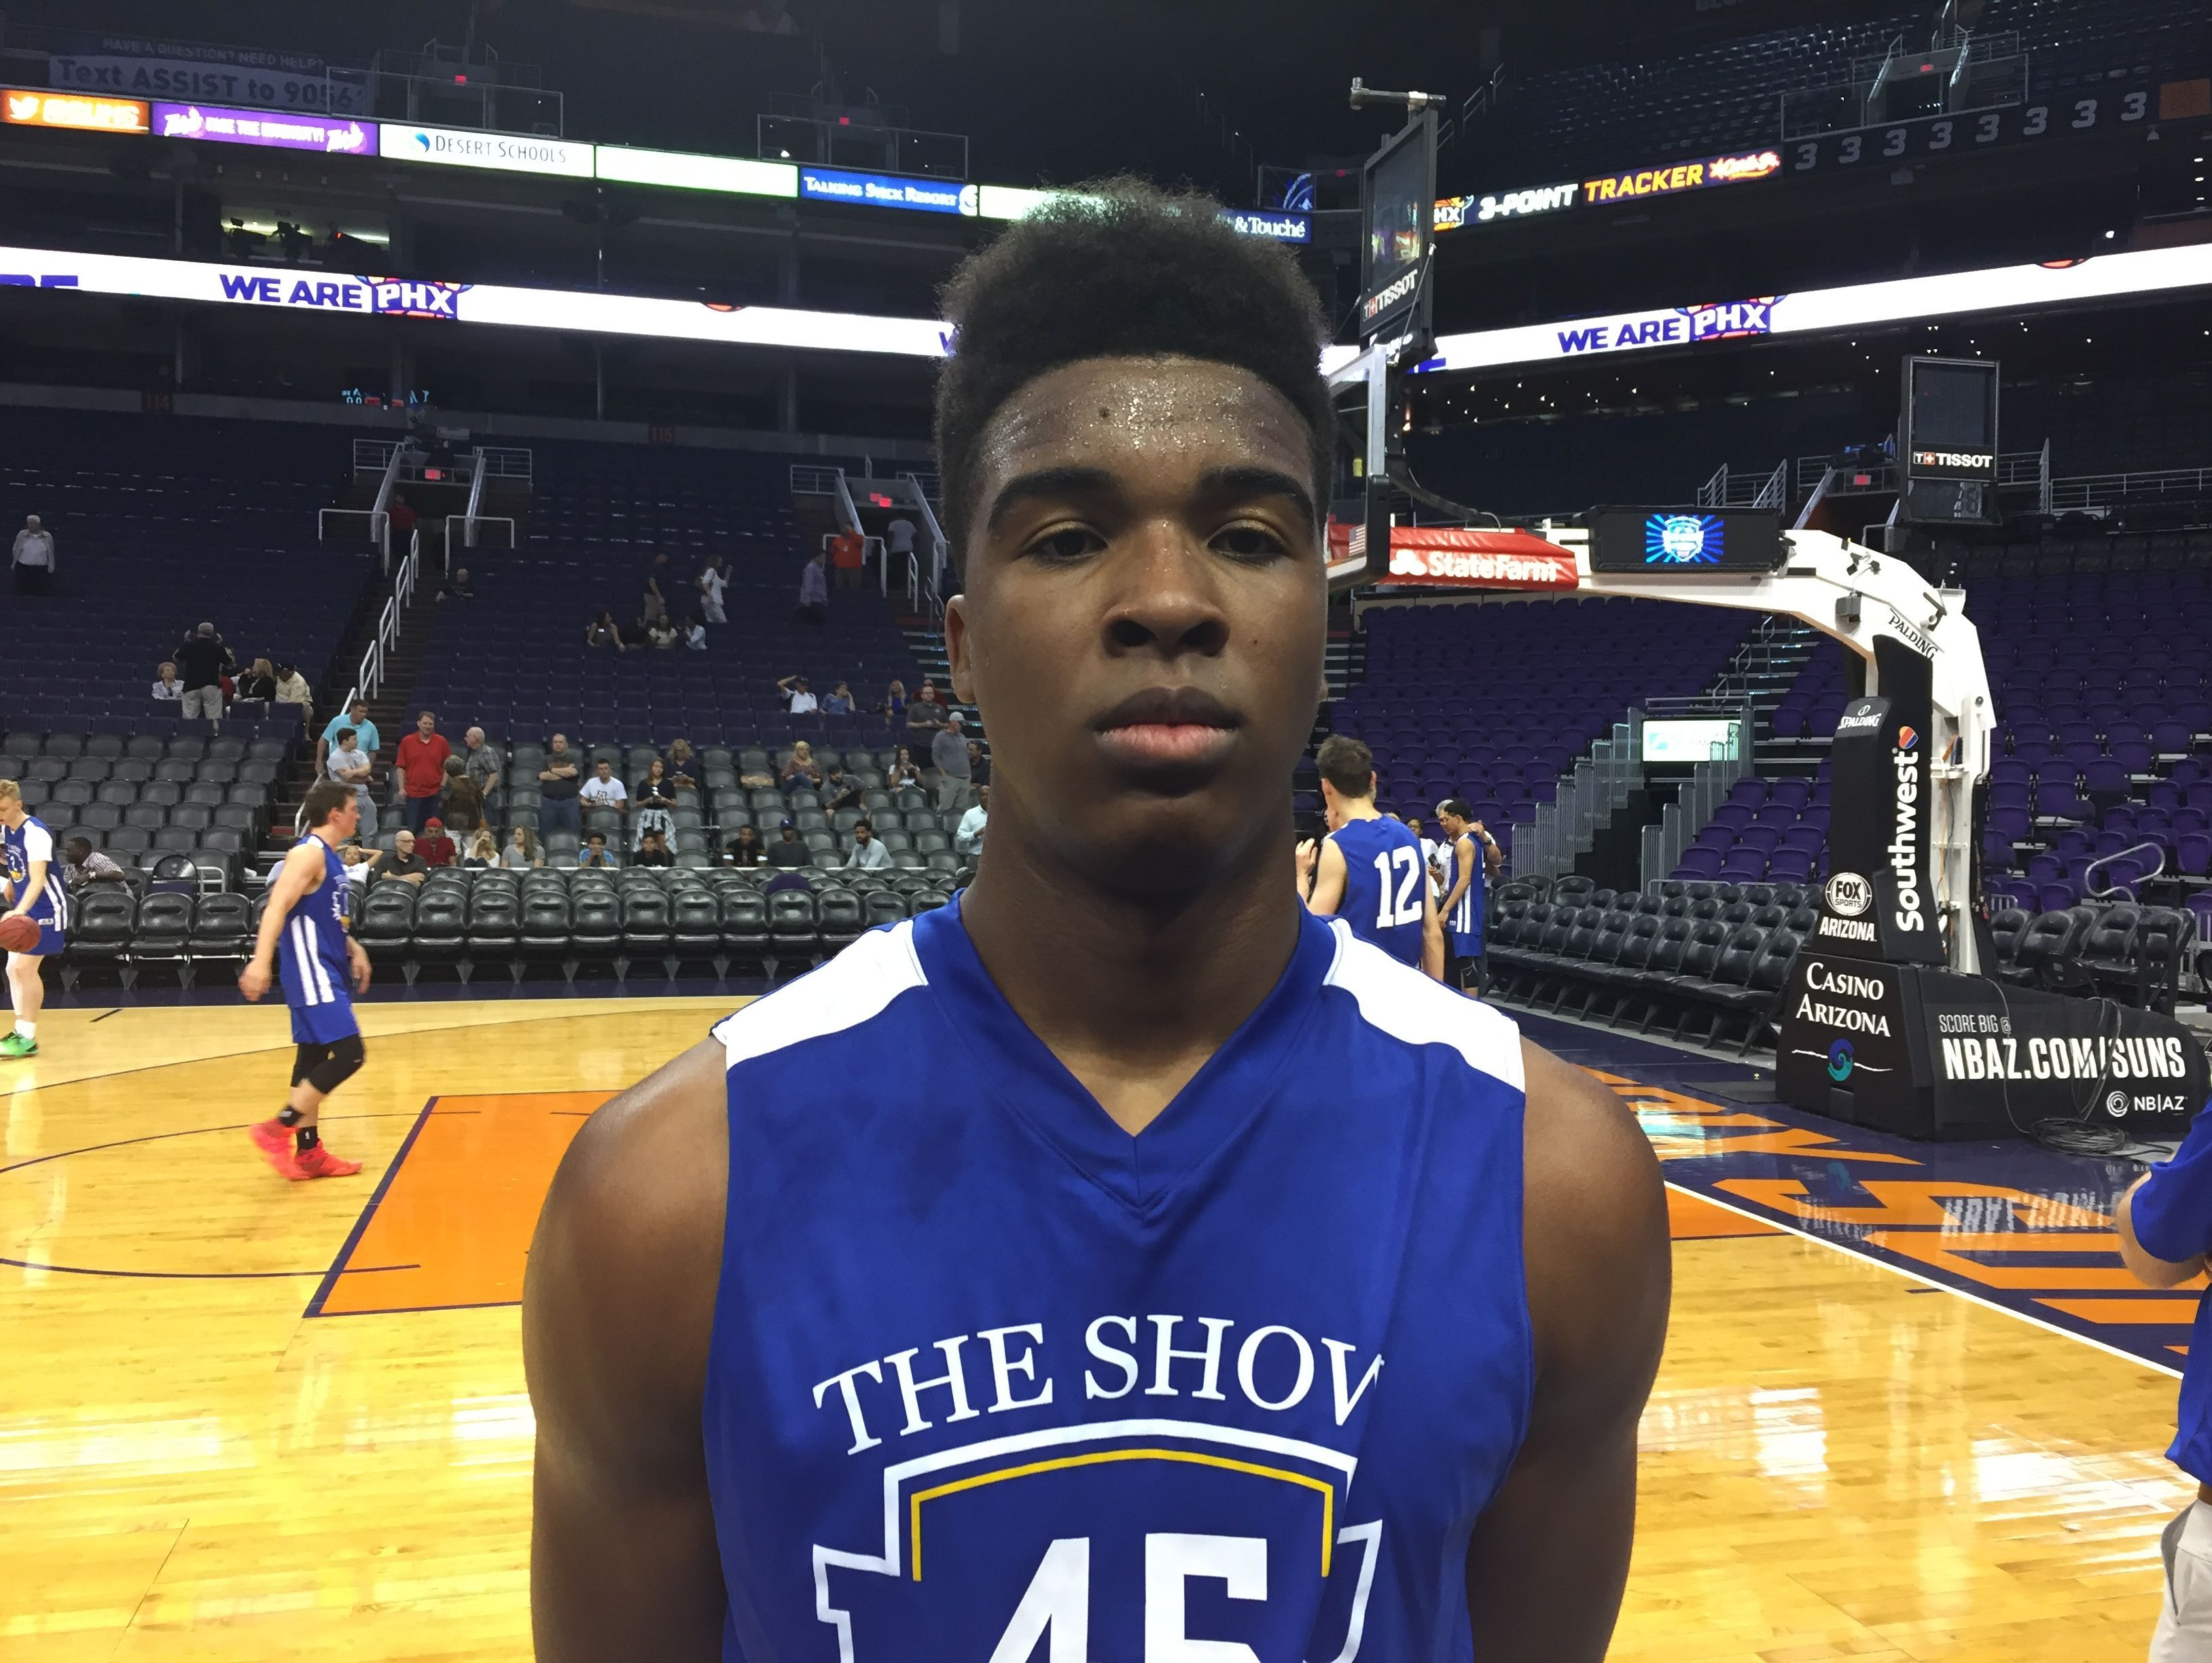 Tri-City Christian forward Nigel Shadd had a big performance in the Blue's win over the White in Arizona's inaugural The Show on Thursday at Talking Stick Resort Arena.